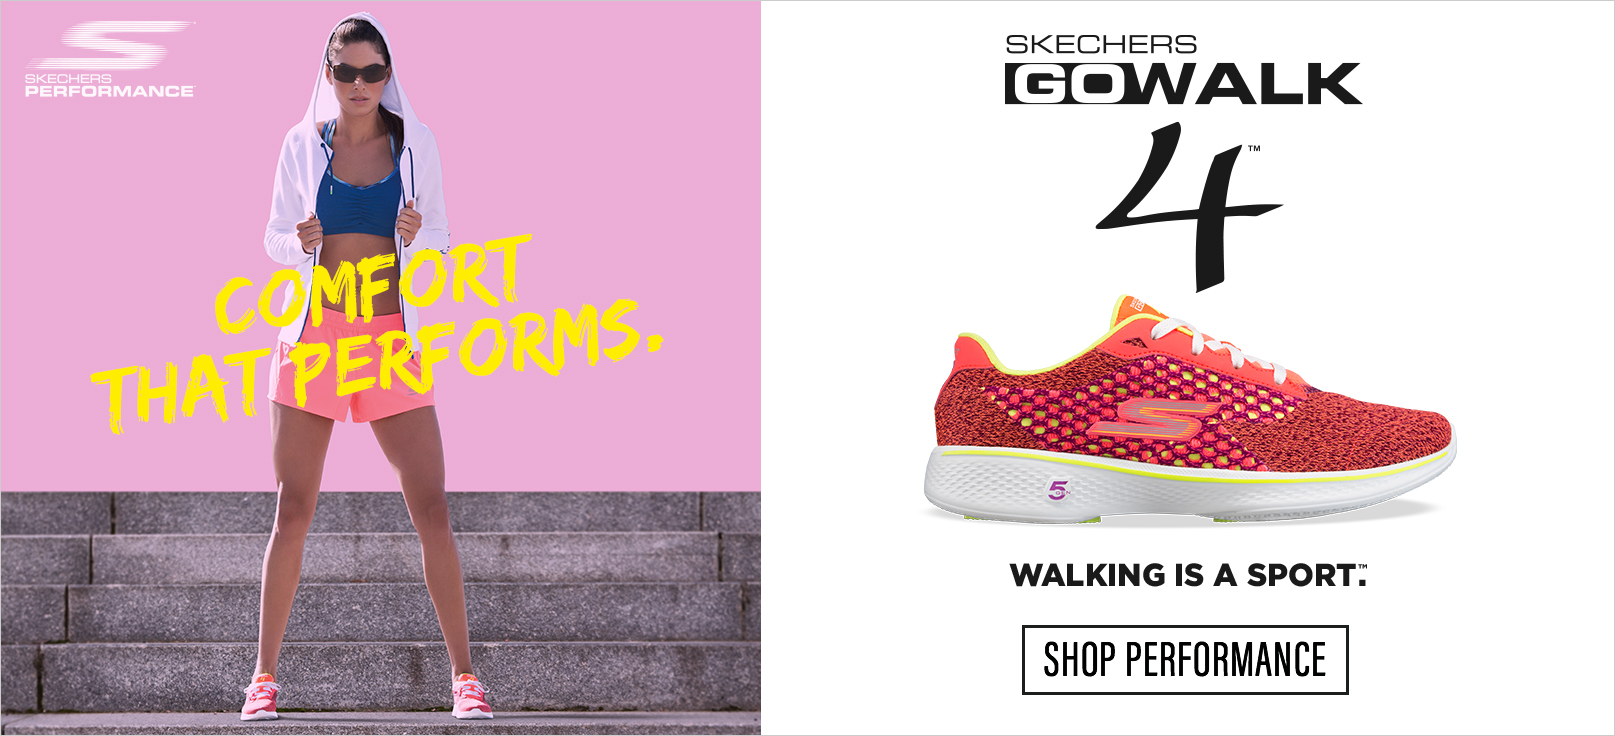 Shop for Performance shoes on skechers.com including GOrun and GOwalk 4